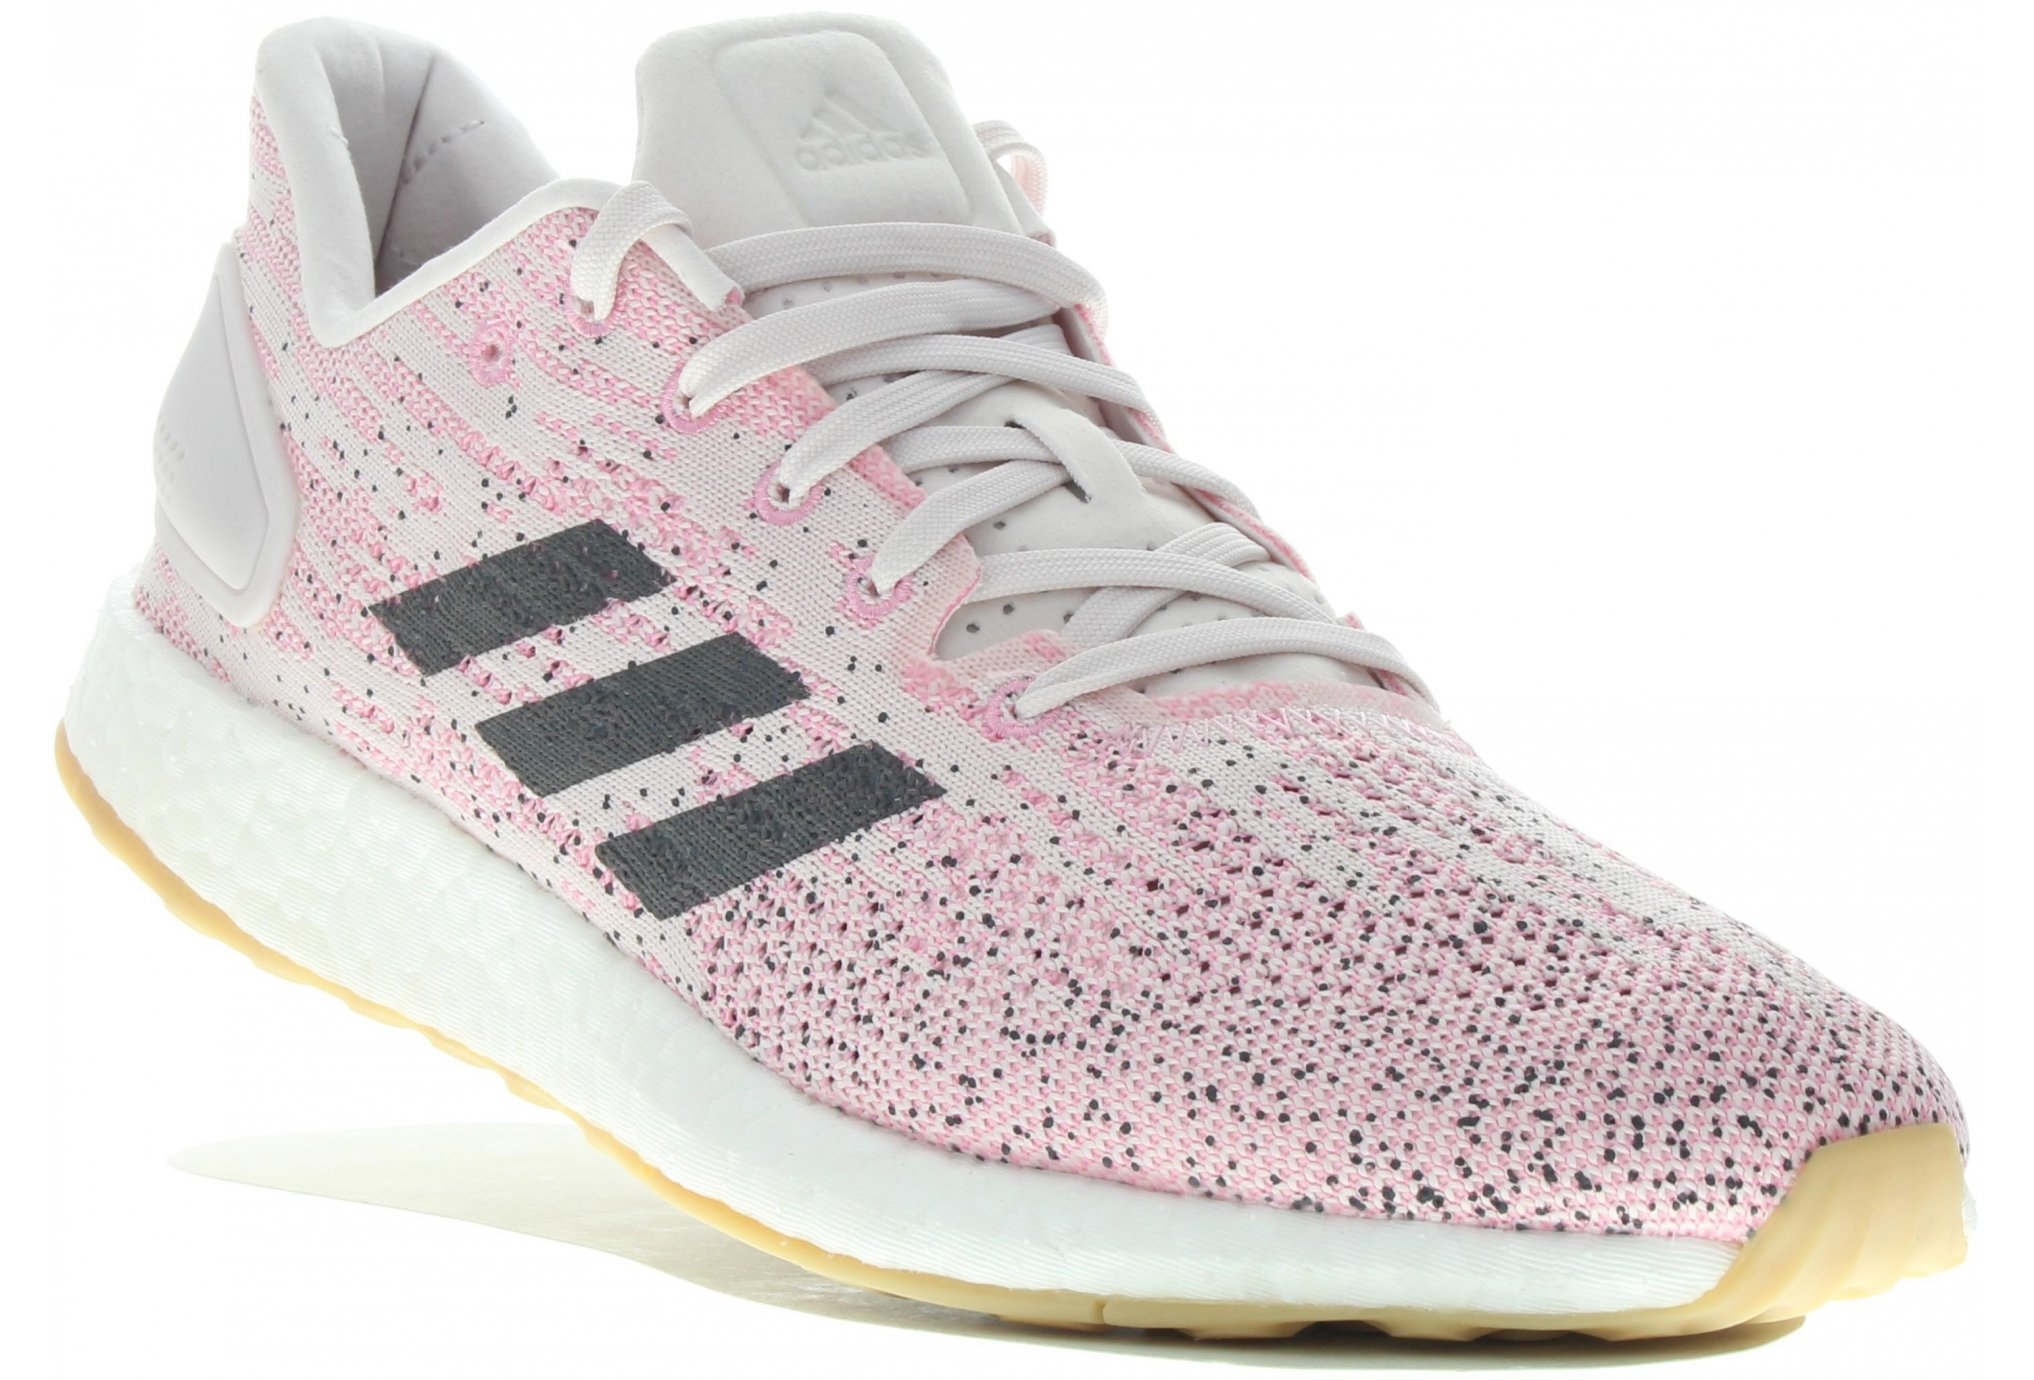 adidas Pure Boost DPR Chaussures running femme